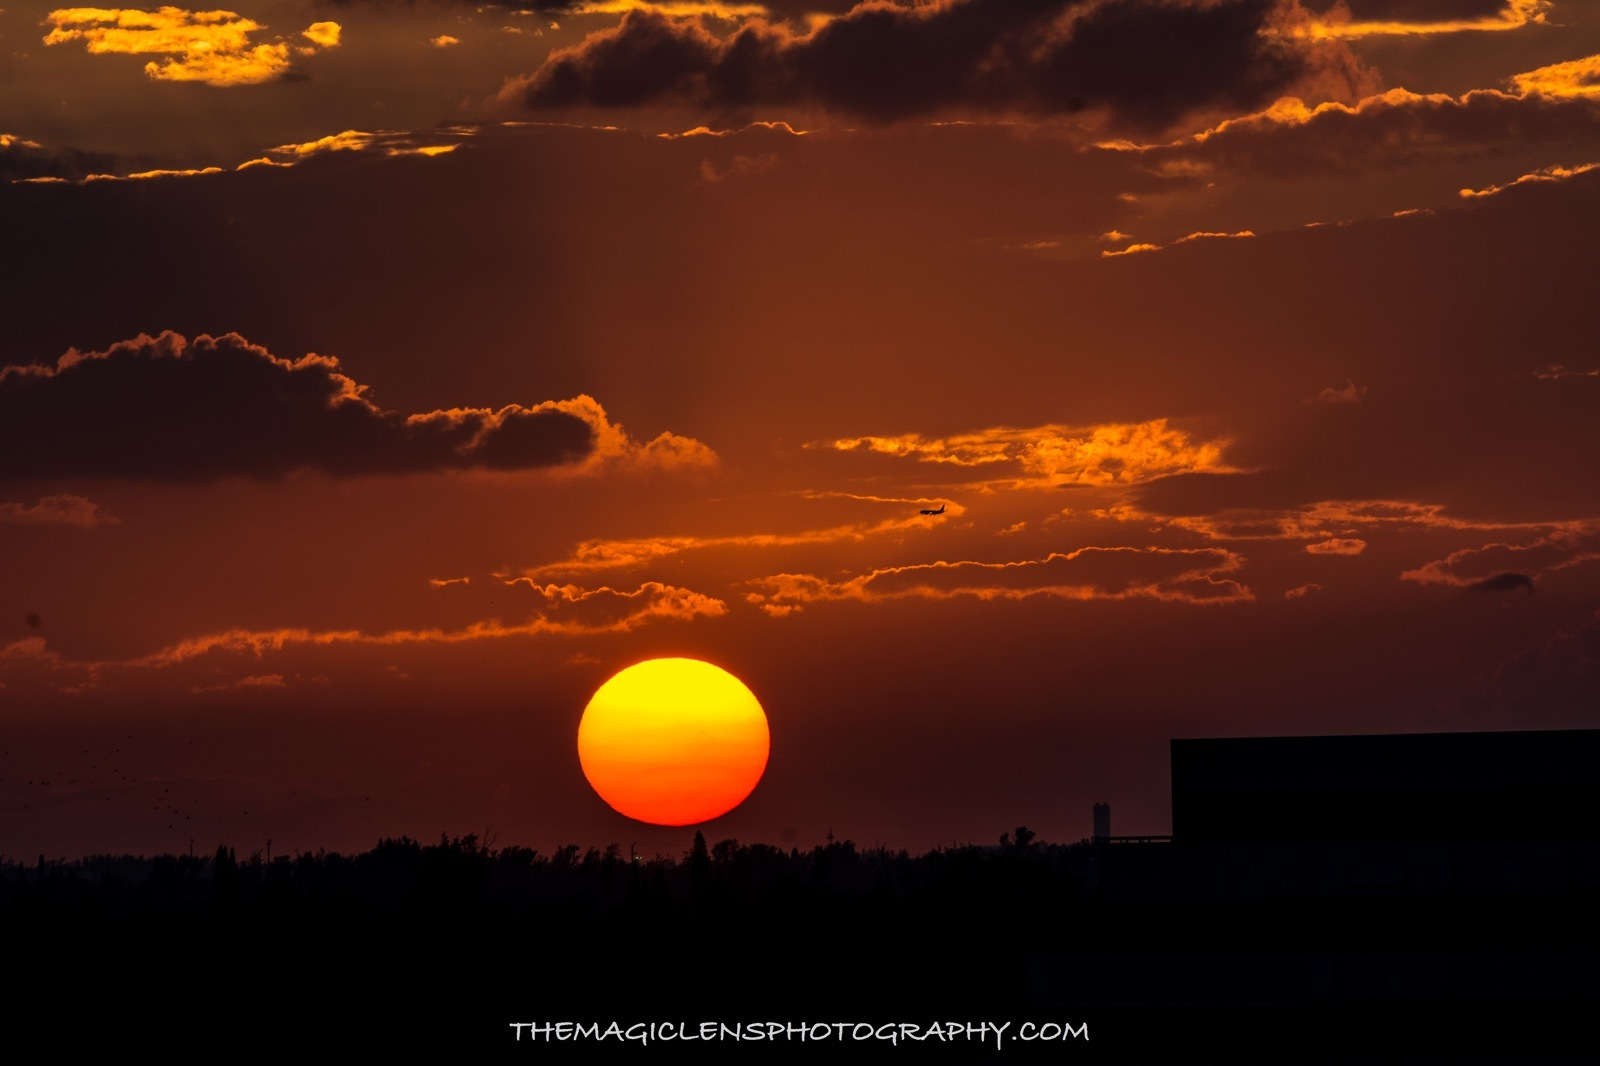 The Sun Power by themagiclensphotography